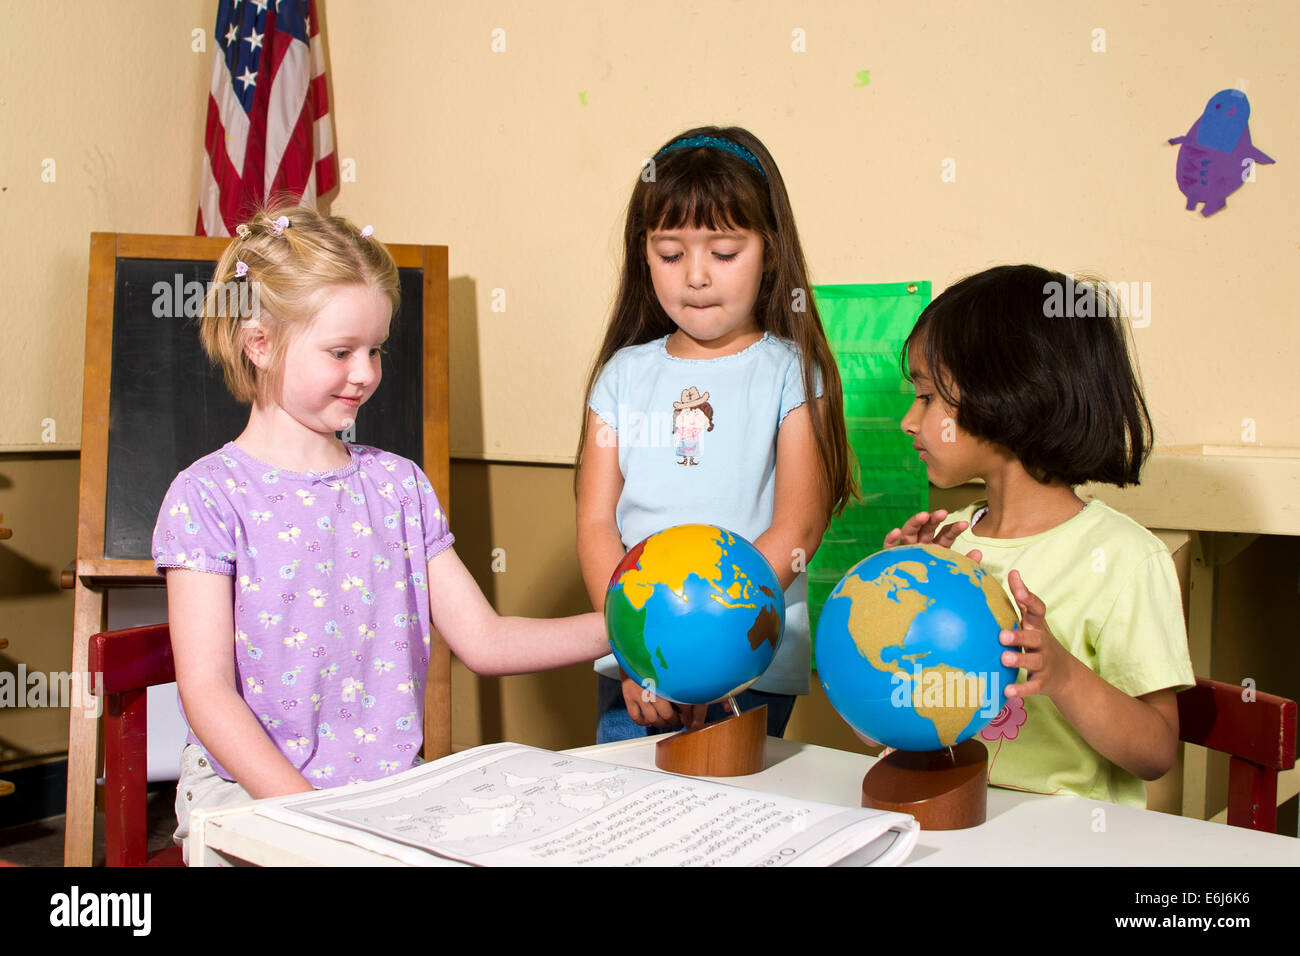 multi ethnic racial diversity racially diverse multicultural cultural  Girls work working together study globe map Stock Photo